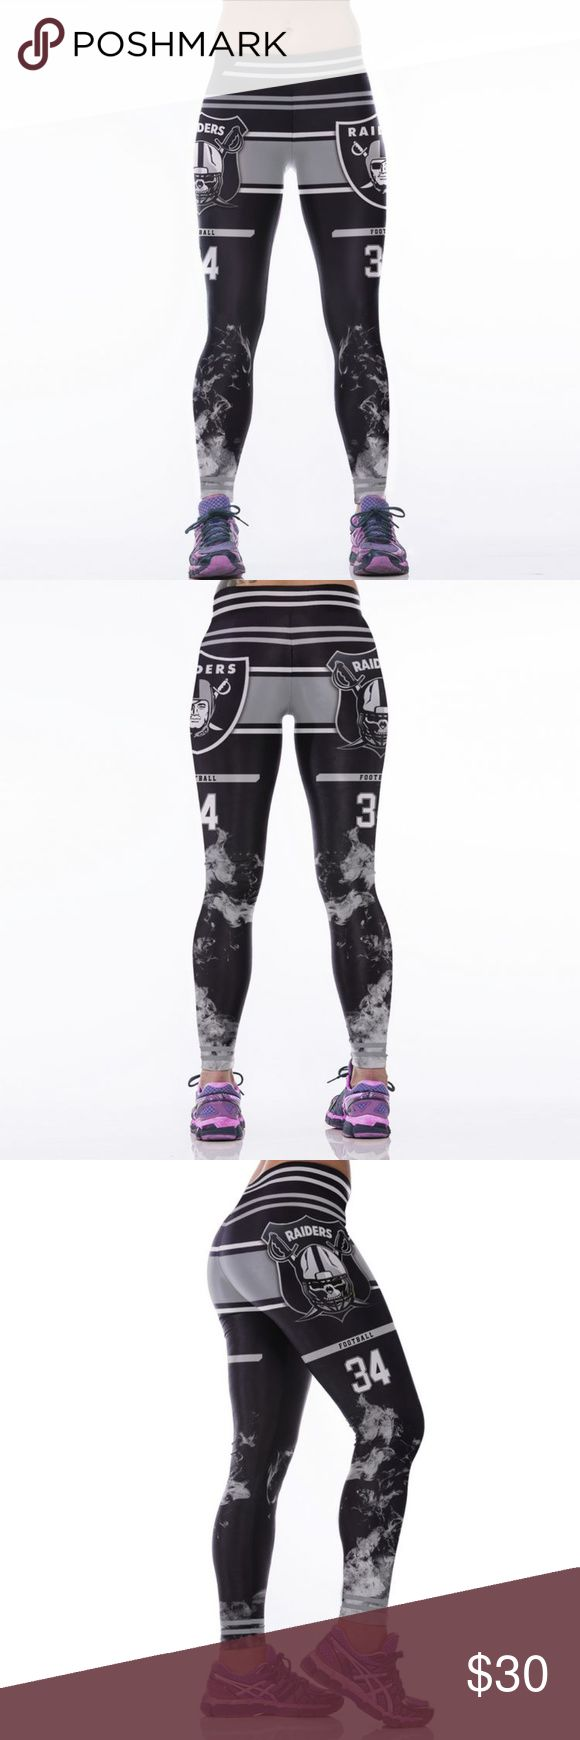 Oakland Raiders NFL Leggings Yoga Pants Root for your favorite team in these high quality NFL leggings! Perfect wardrobe addition while watching Sunday football games. The vivid colors and designs are sure to turn heads! Get a pair now while they last to  https://www.fanprint.com/licenses/oakland-raiders?ref=5750